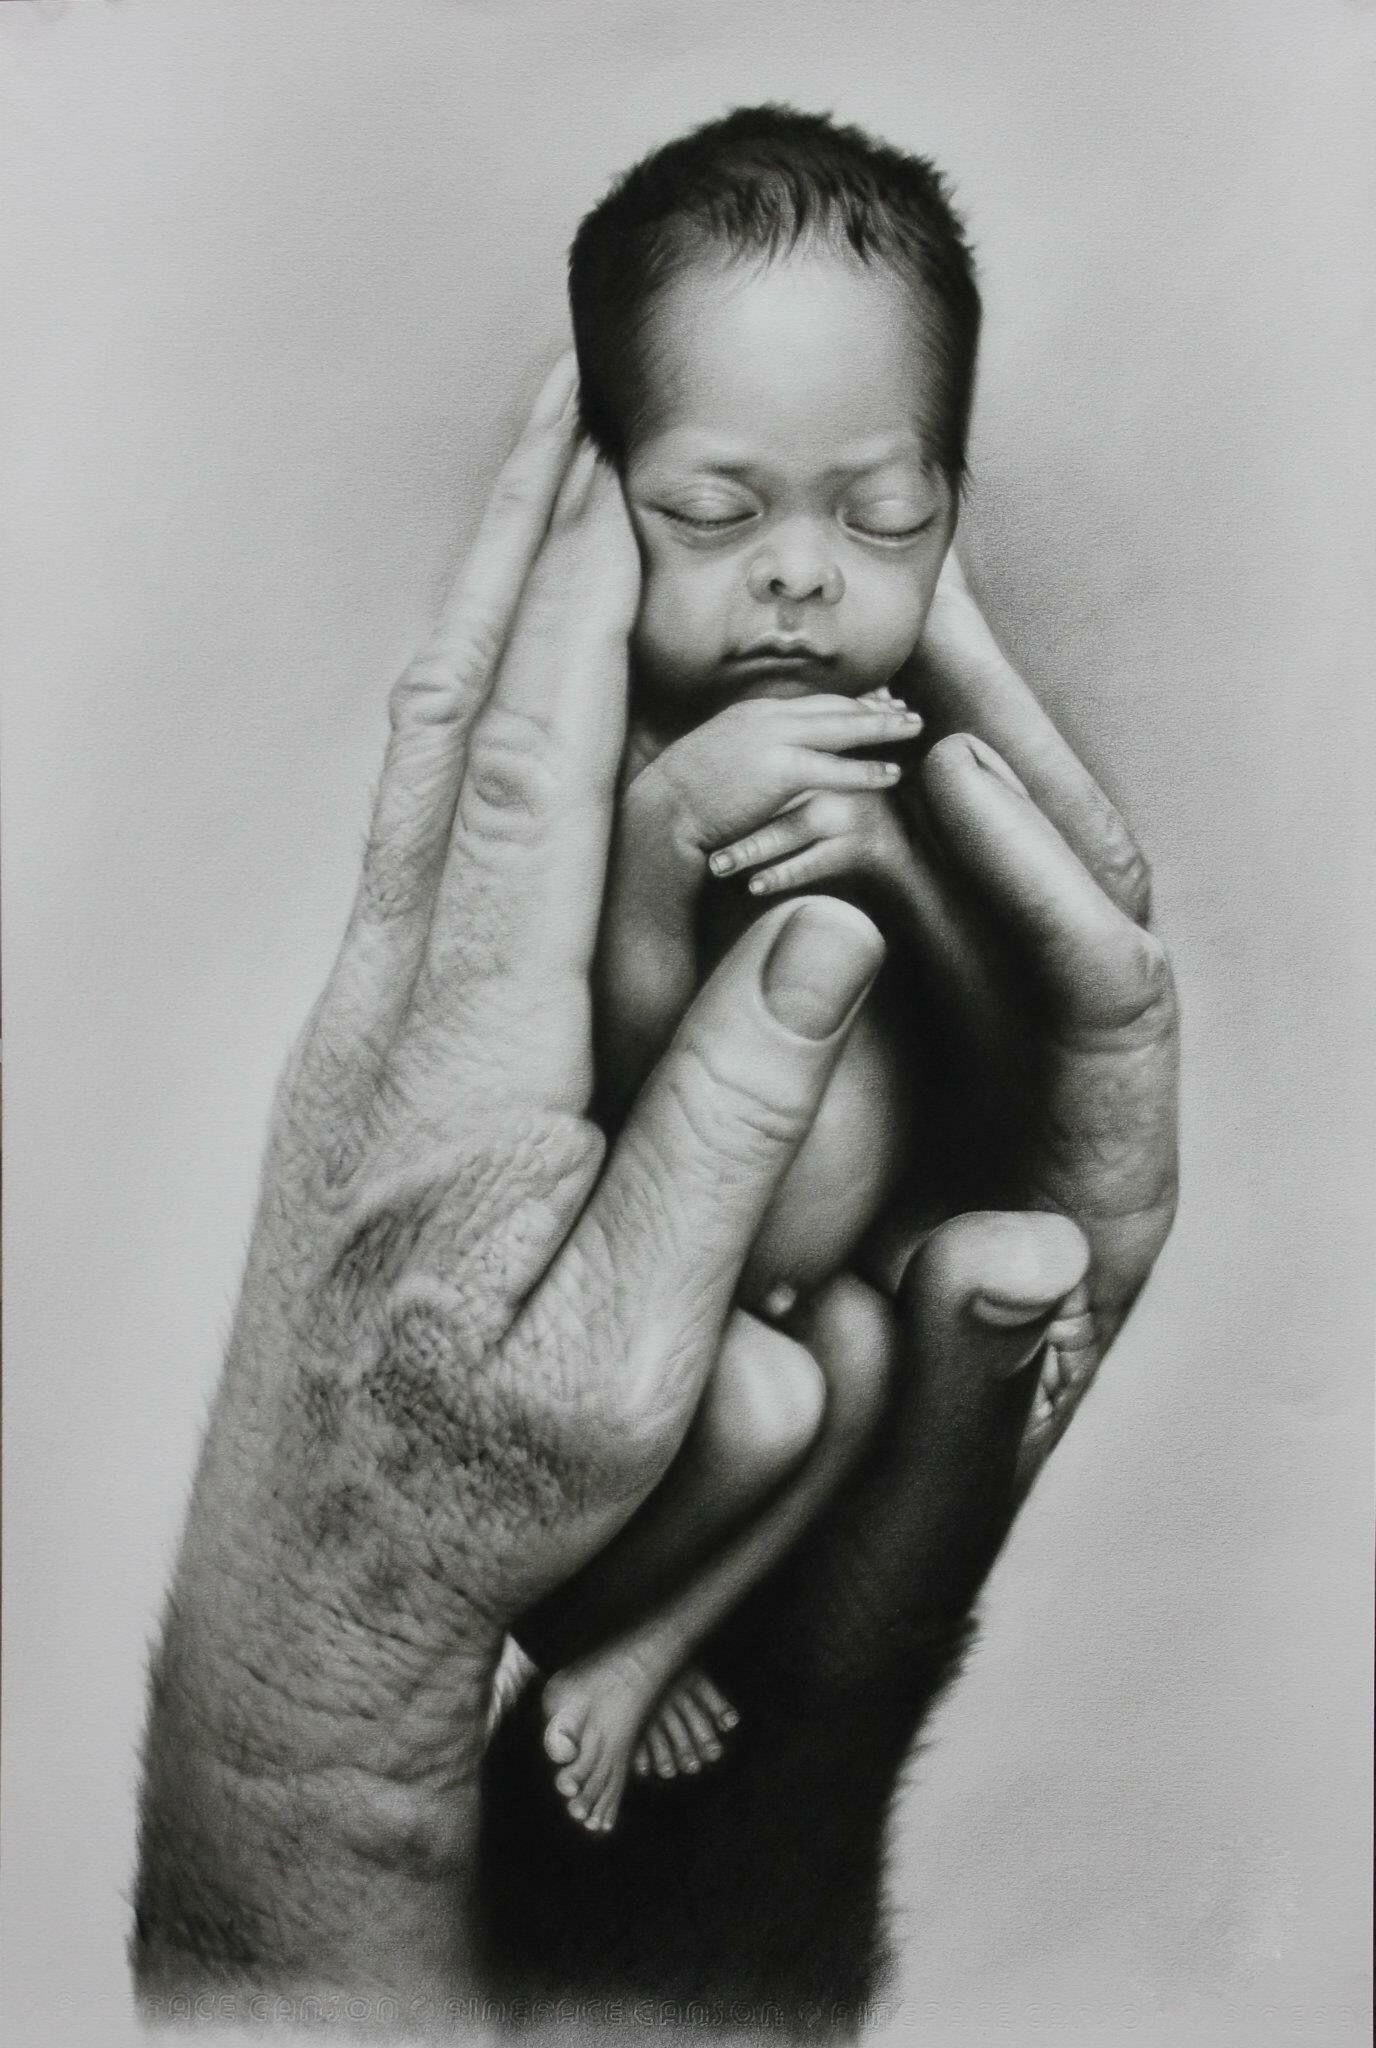 jpg royalty free download Drawing charcoal baby. Very touching i made